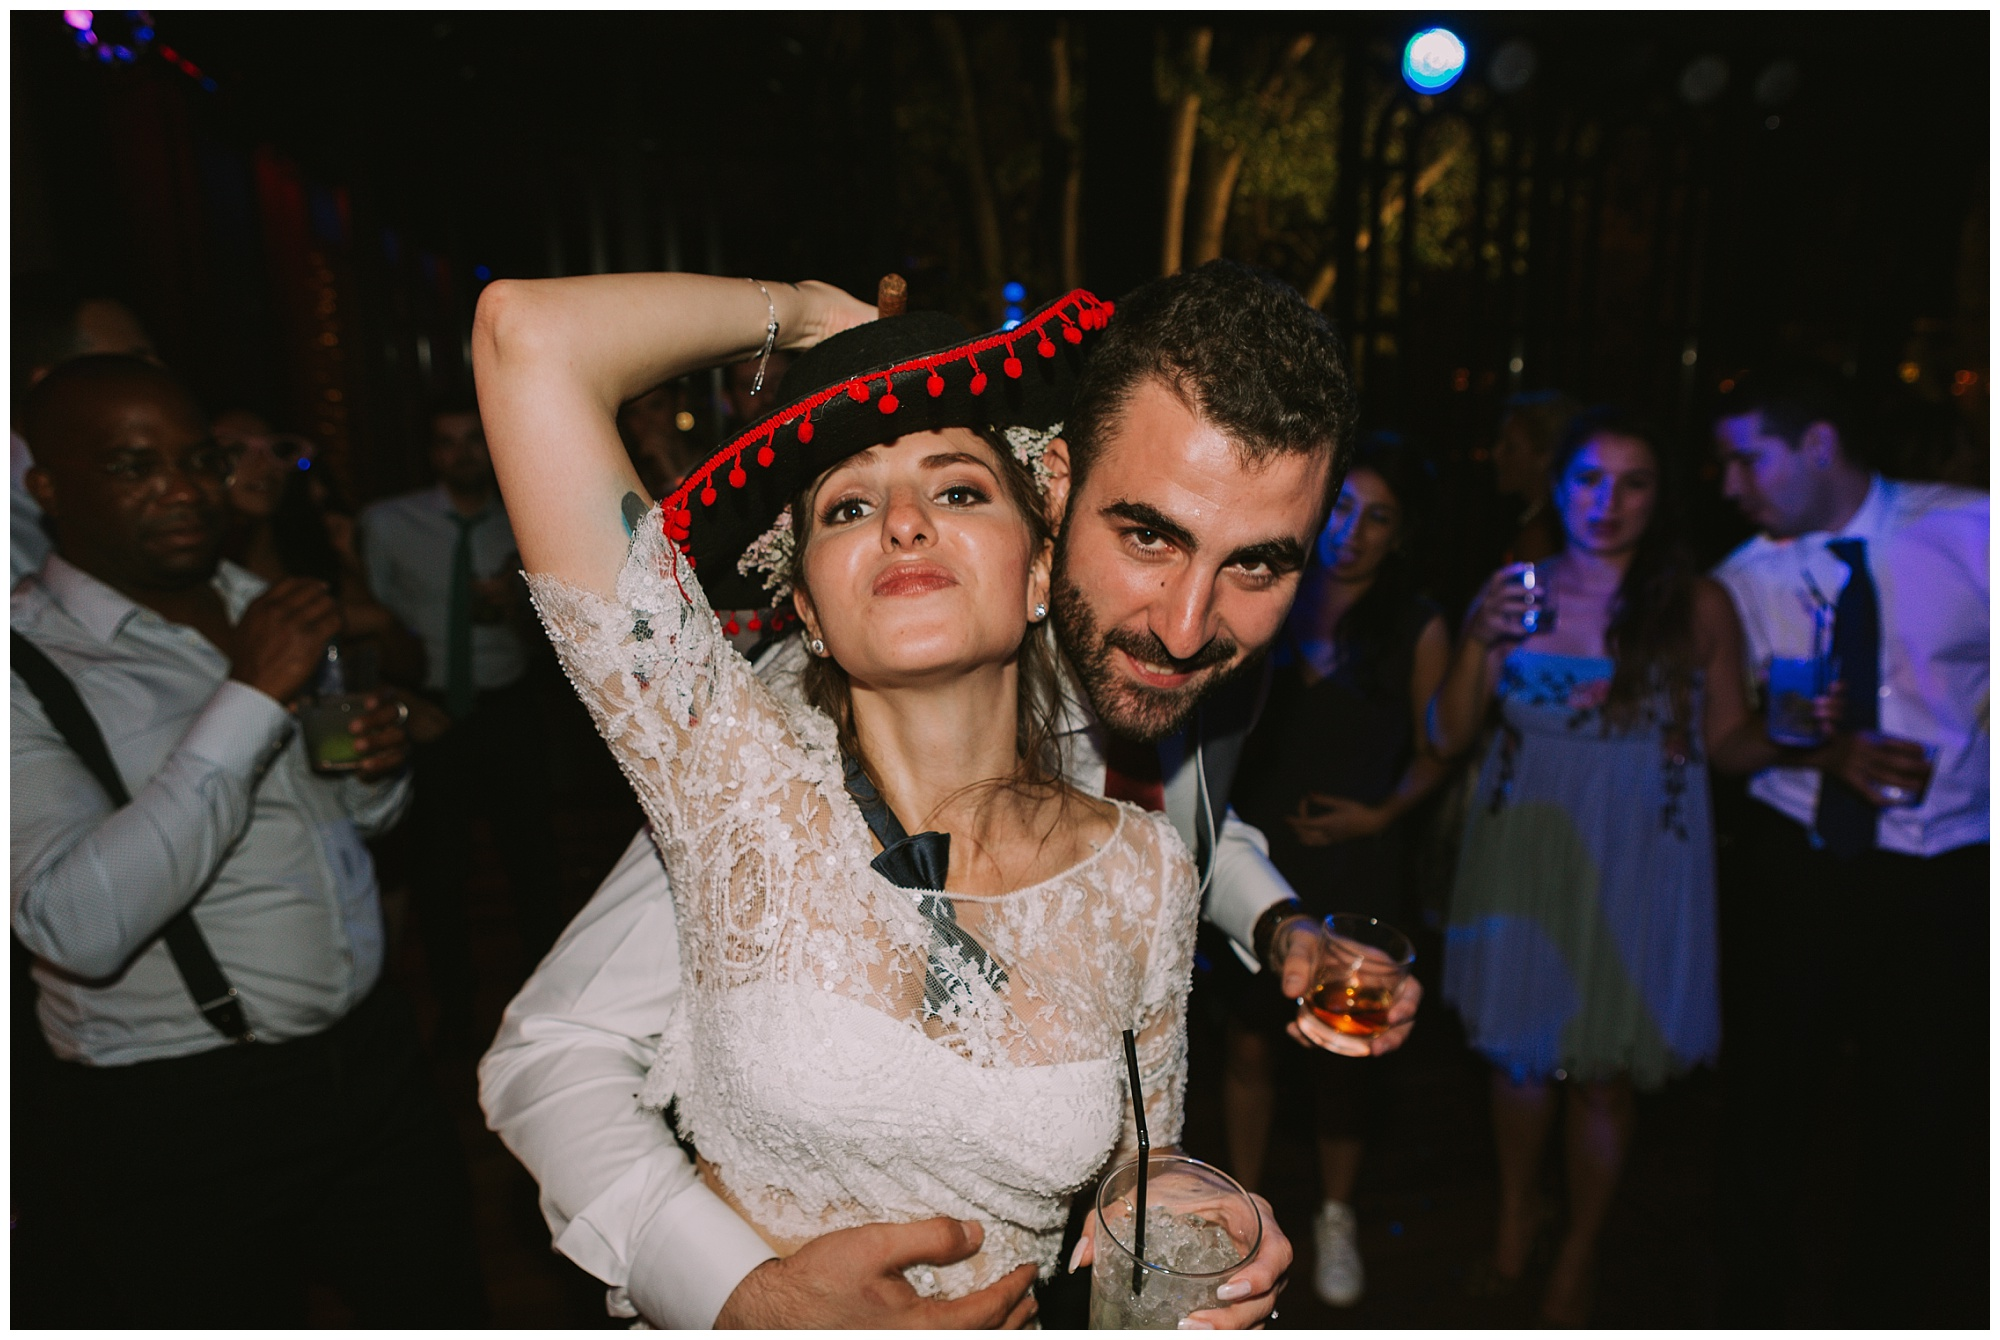 Kateryna-photos-wedding-photographer-in-barcelona-boda--bell-reco-catalunya_party-in-a palace_0184.jpg